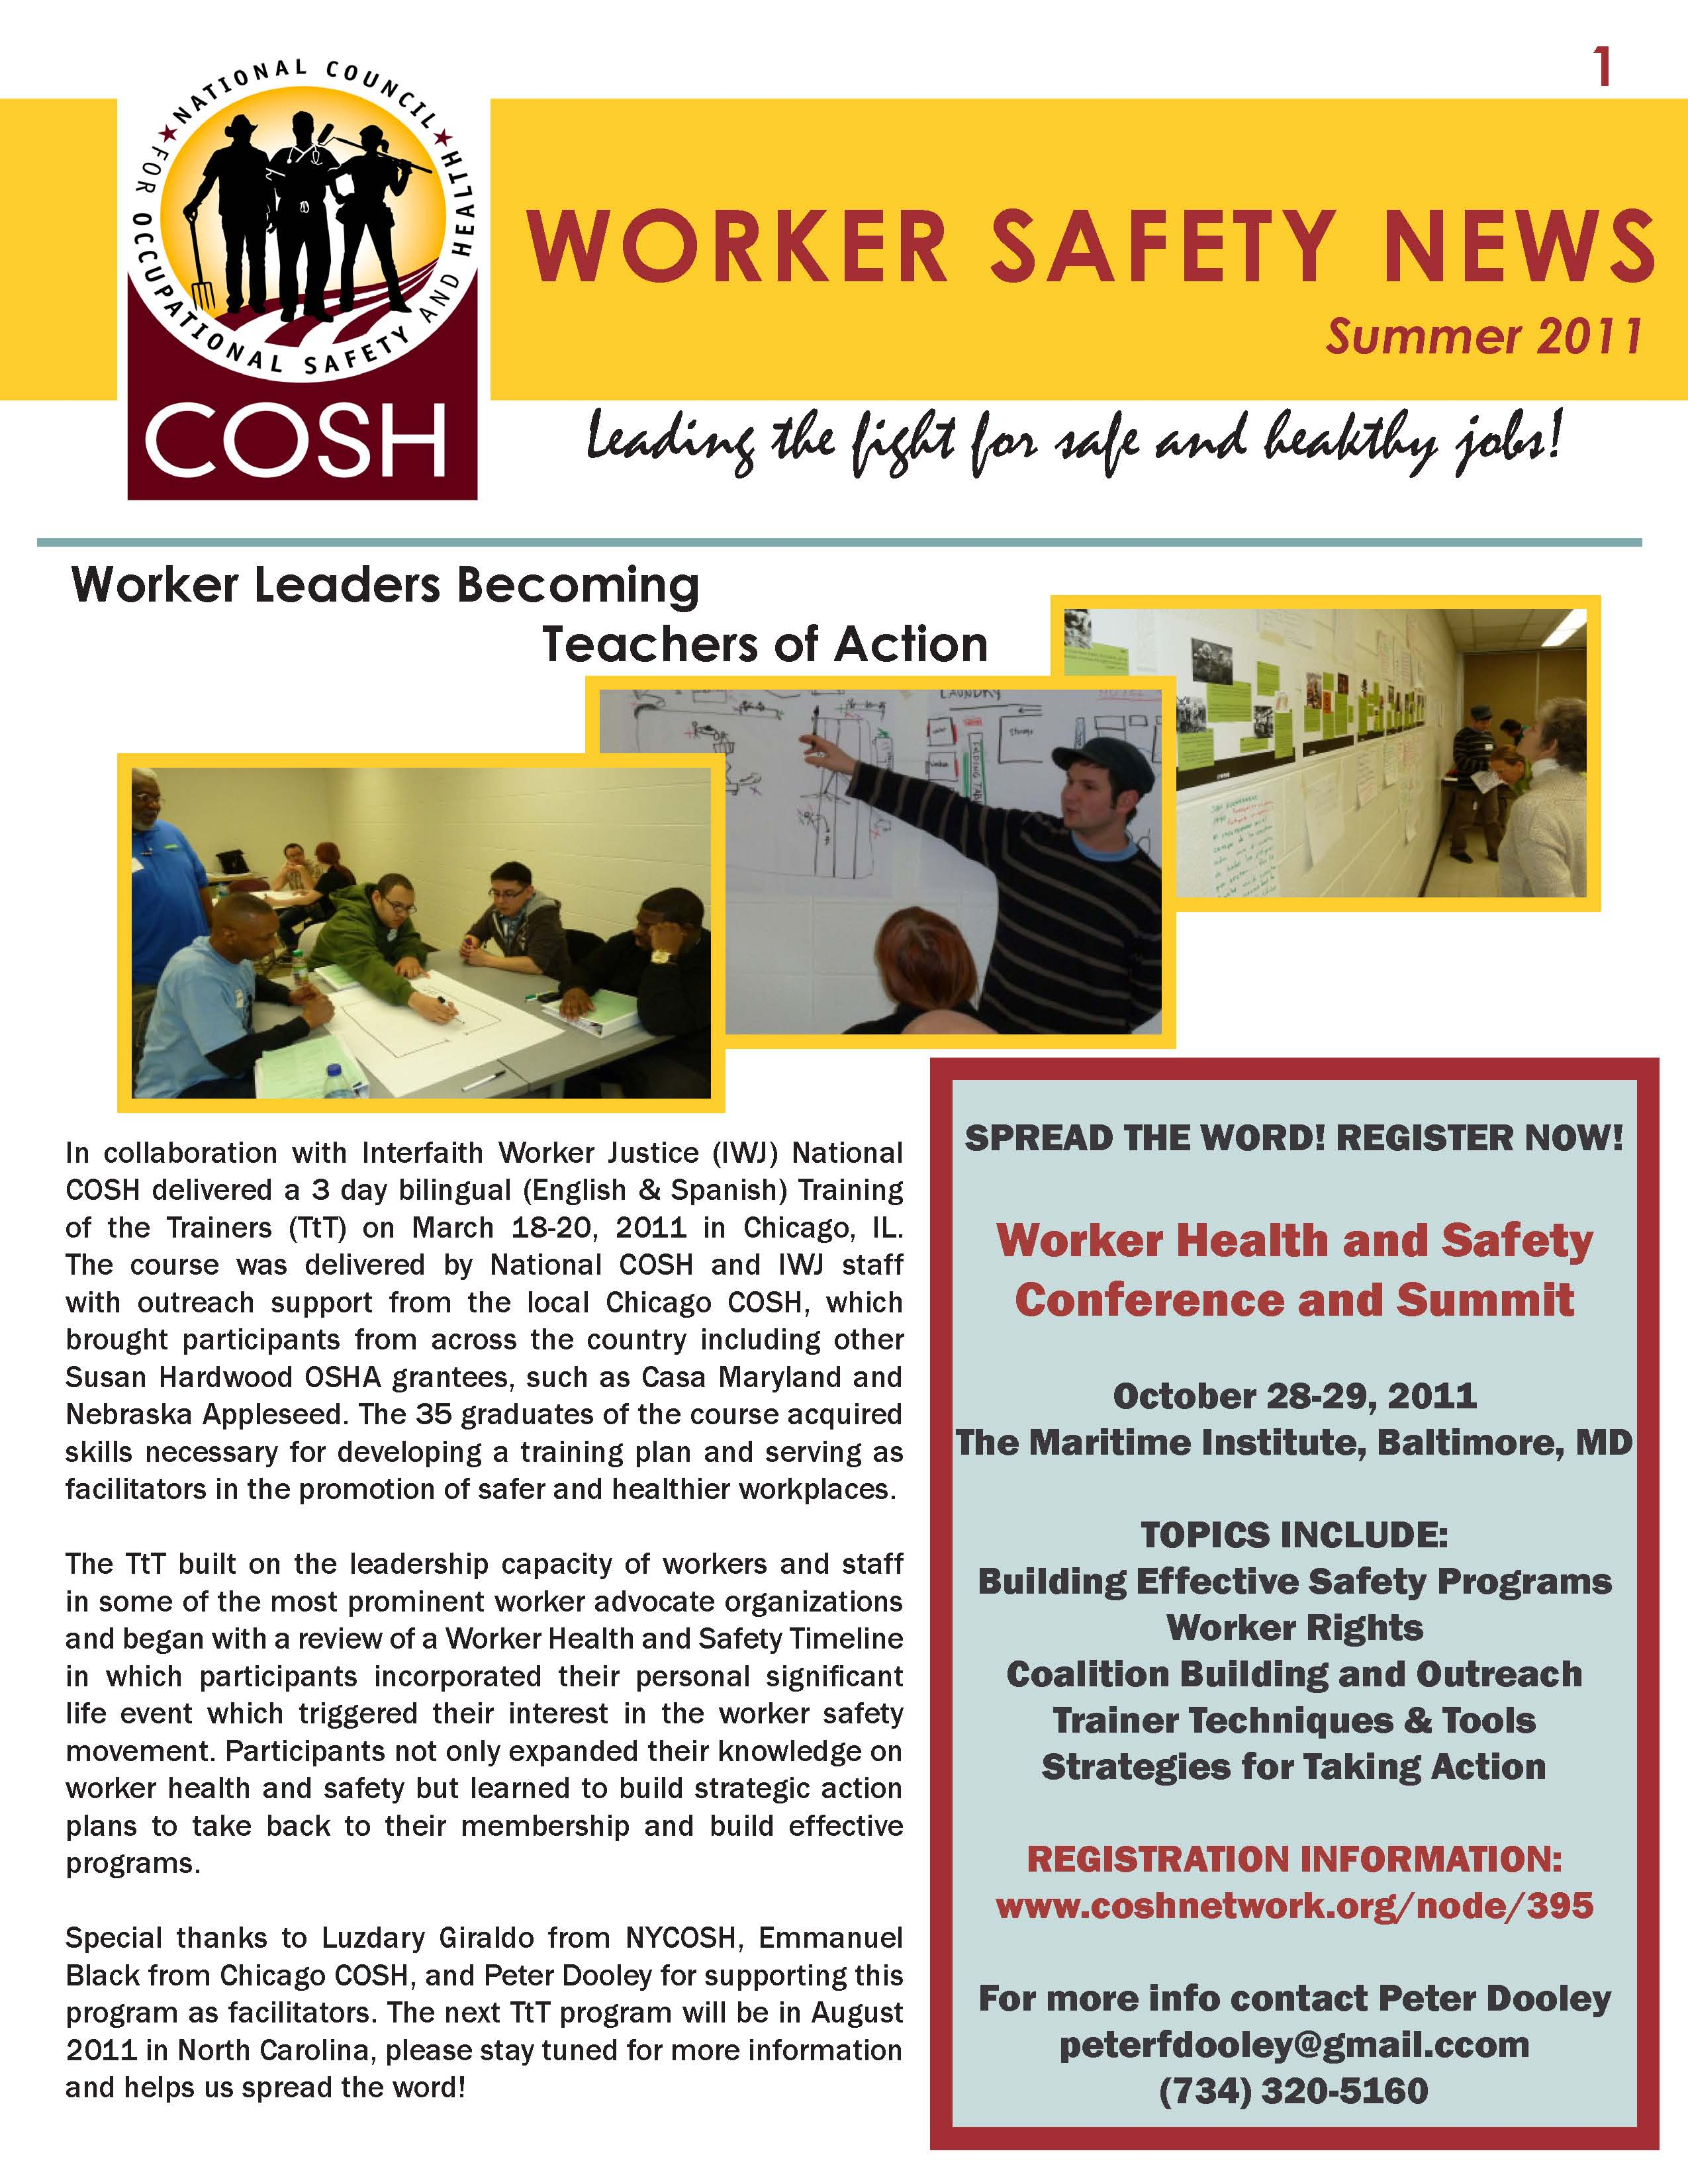 COSH newsletter summer 2011 page 1